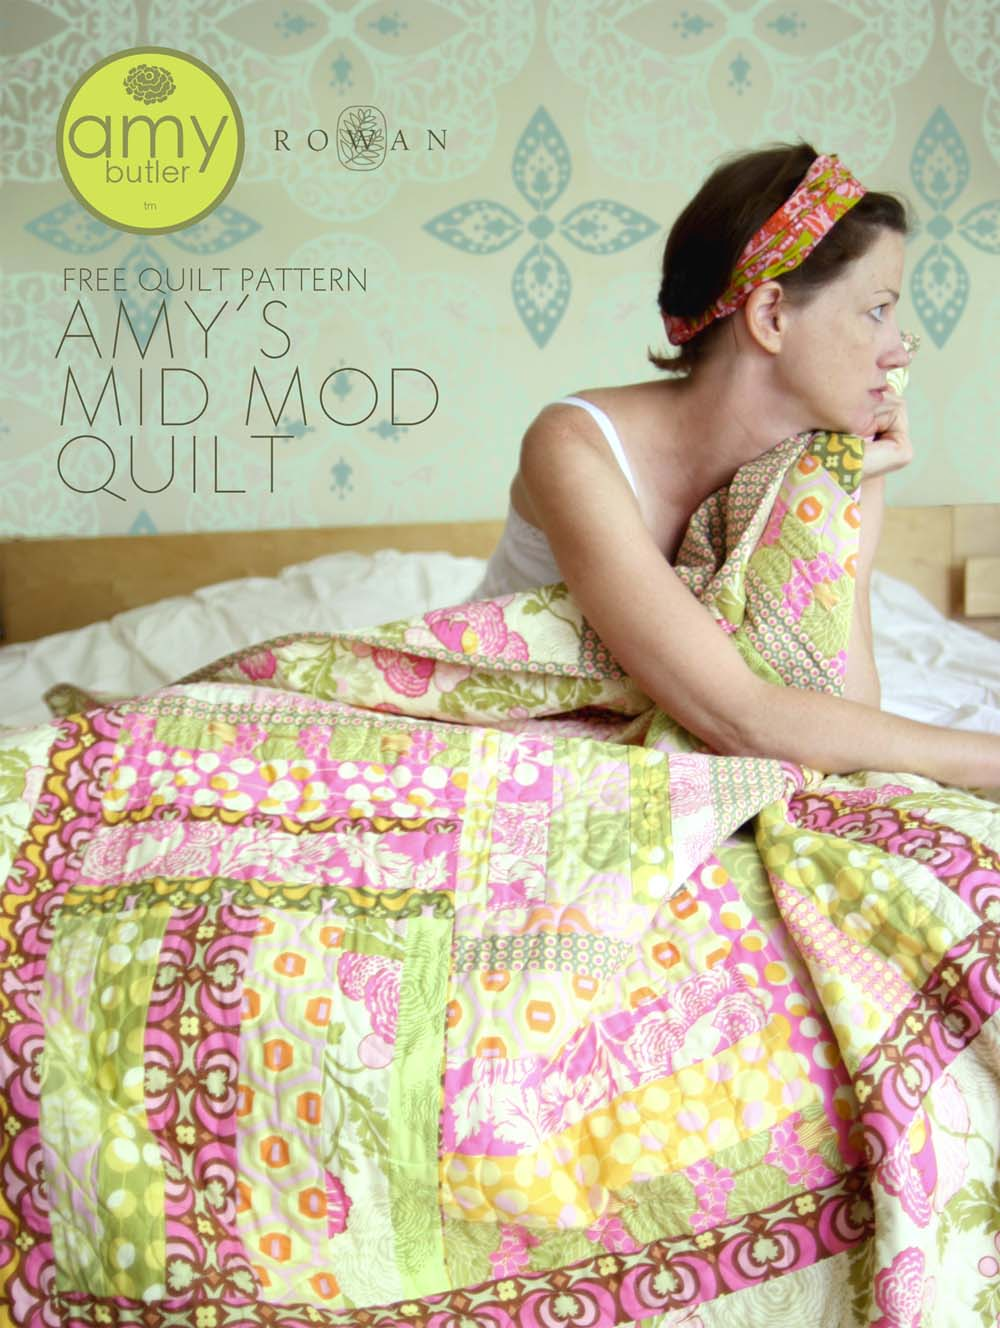 amish quilts for sale, moda quilt kit, pattern for quilts, scrap quilts